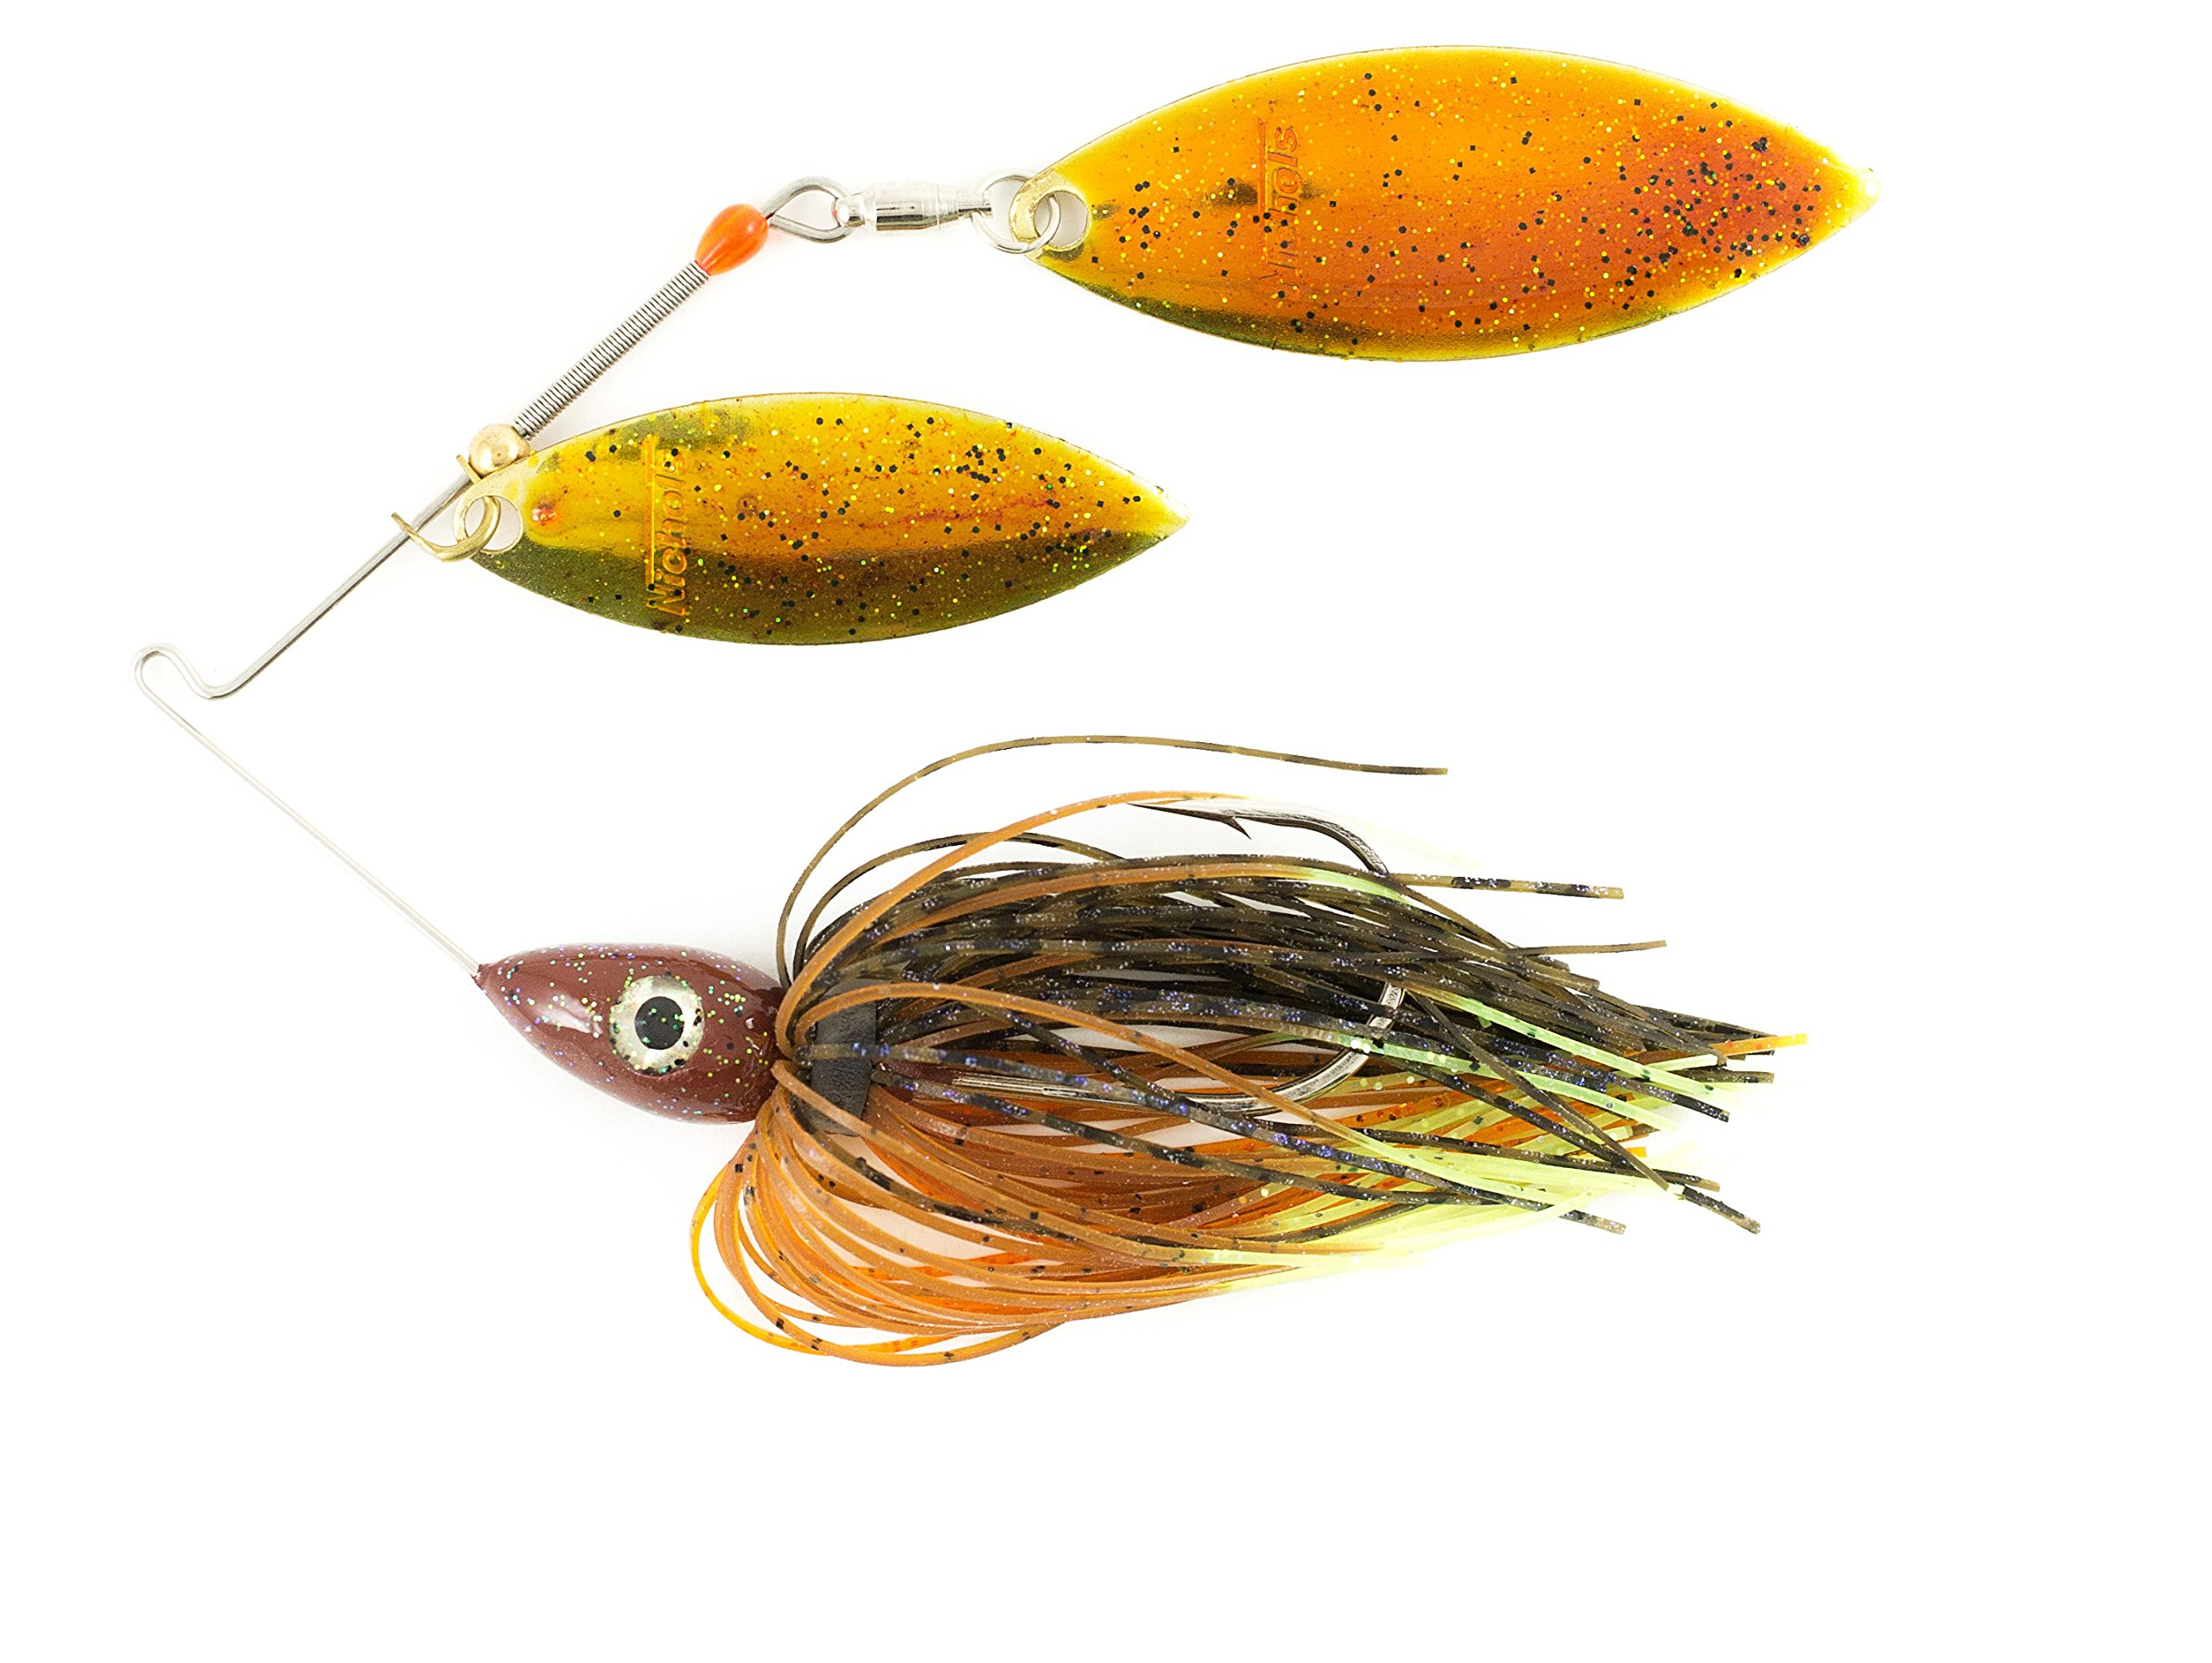 Nichols Lures Pulsator Metal Flake Double Willow Spinnerbait, Bluegill, 1/2-Ounce/.44-Magnum by Nichols Lures